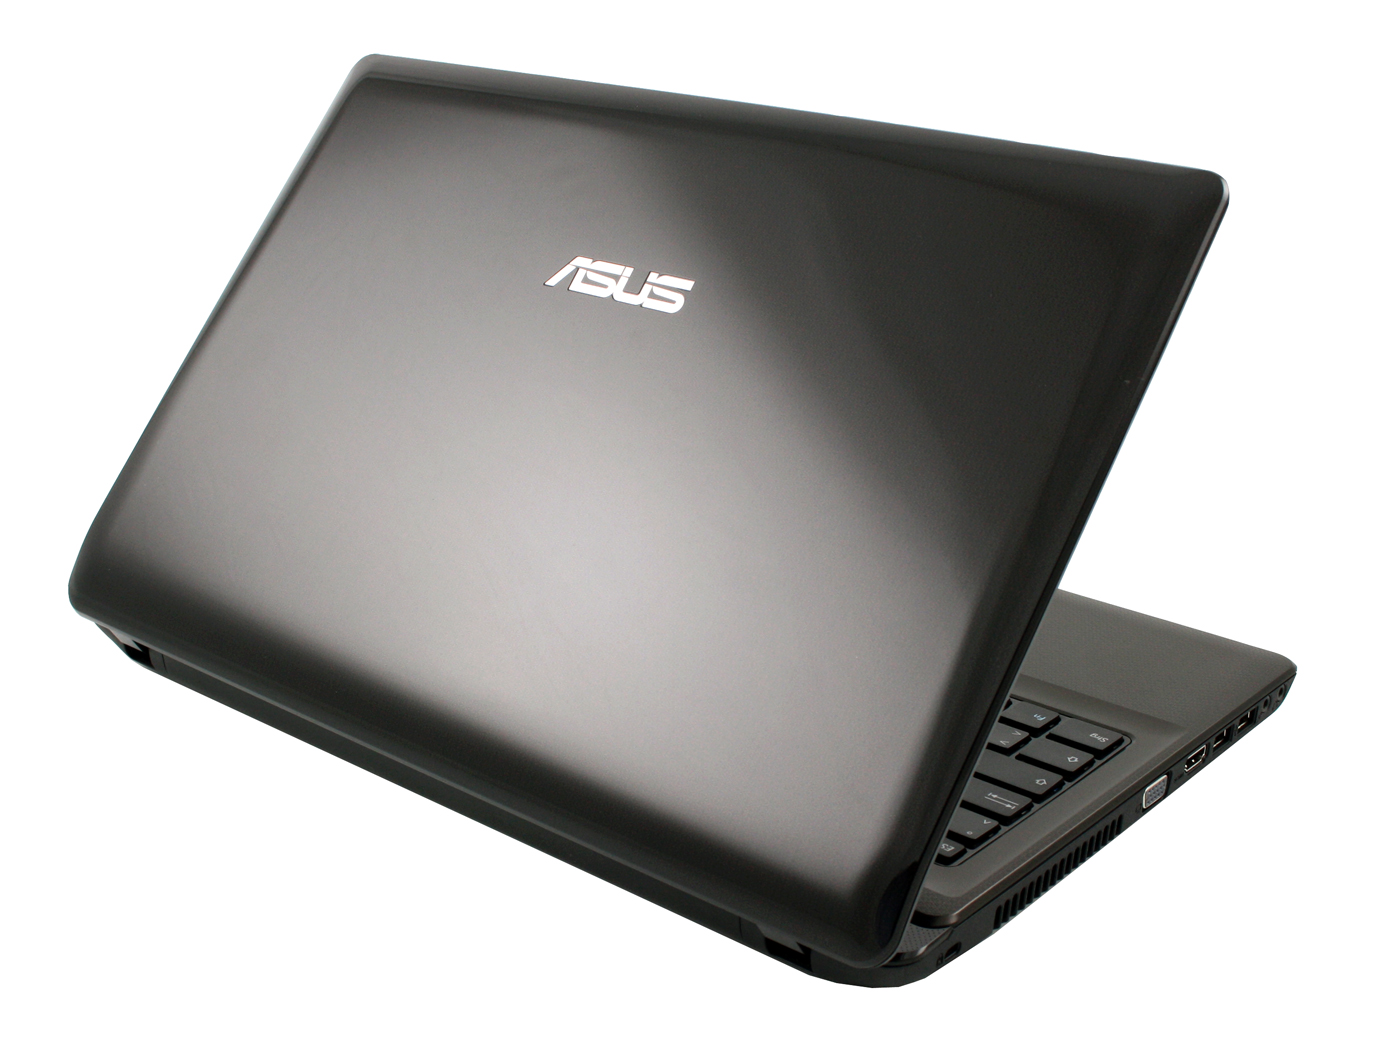 ASUS B53J NOTEBOOK INTEL CHIPSET DRIVERS UPDATE